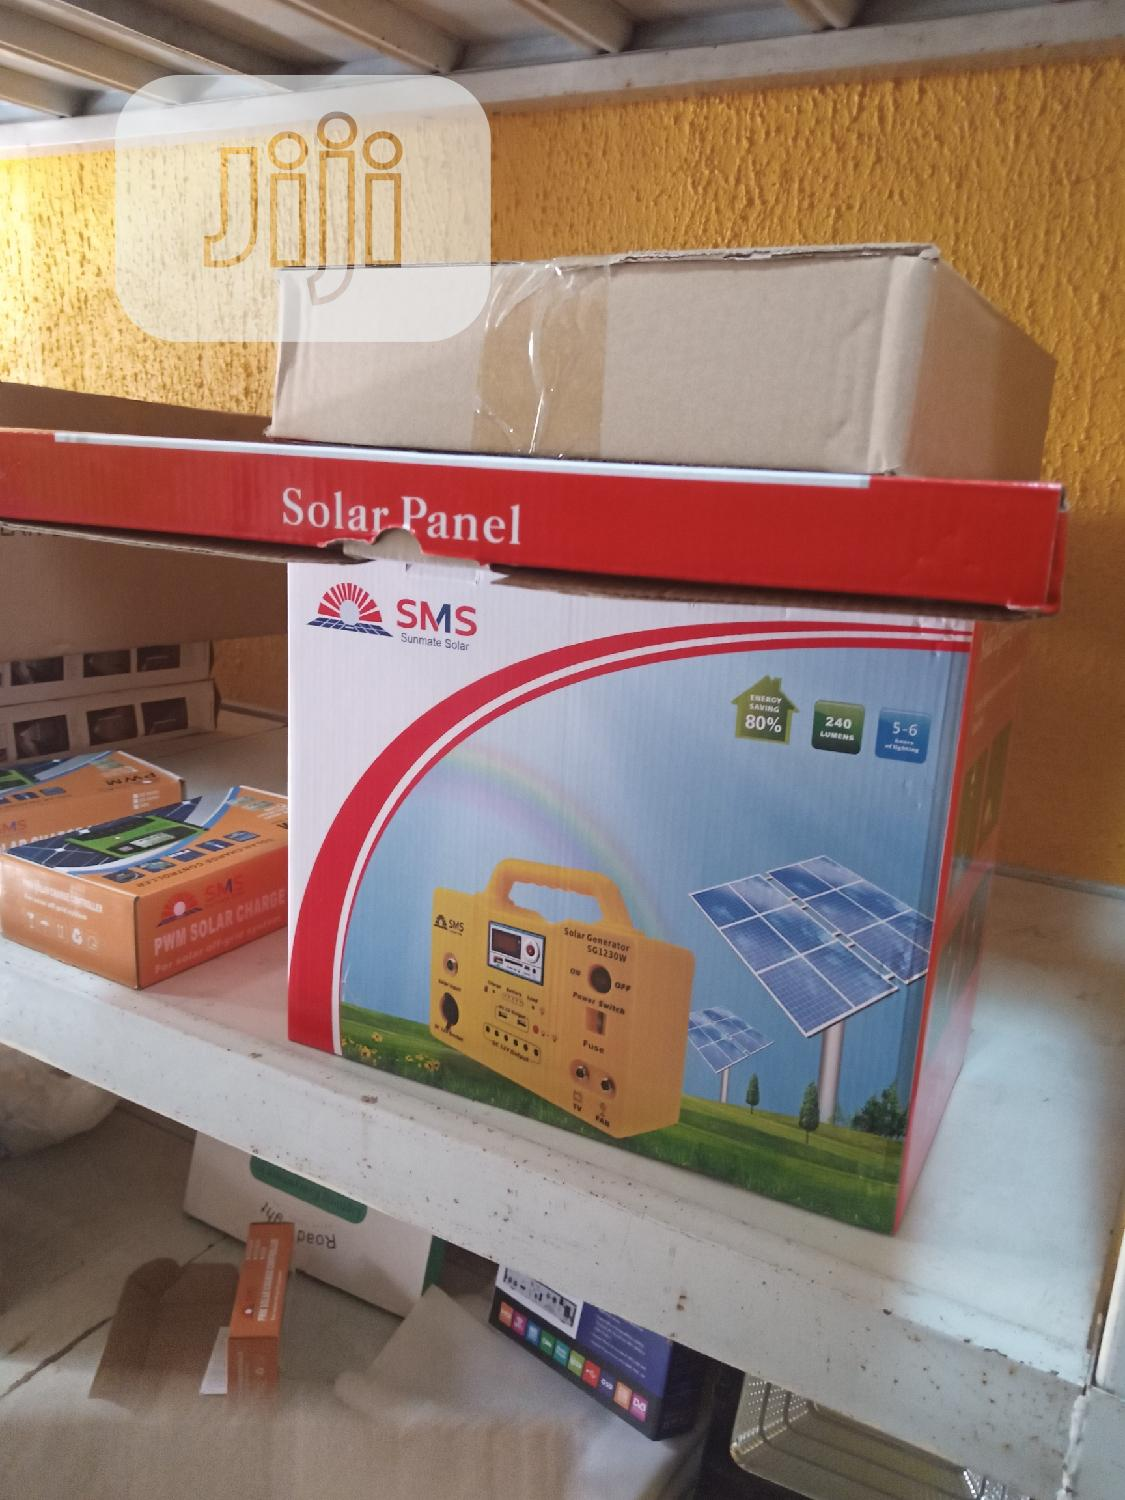 3ow Solar Generator Sms With Warranty